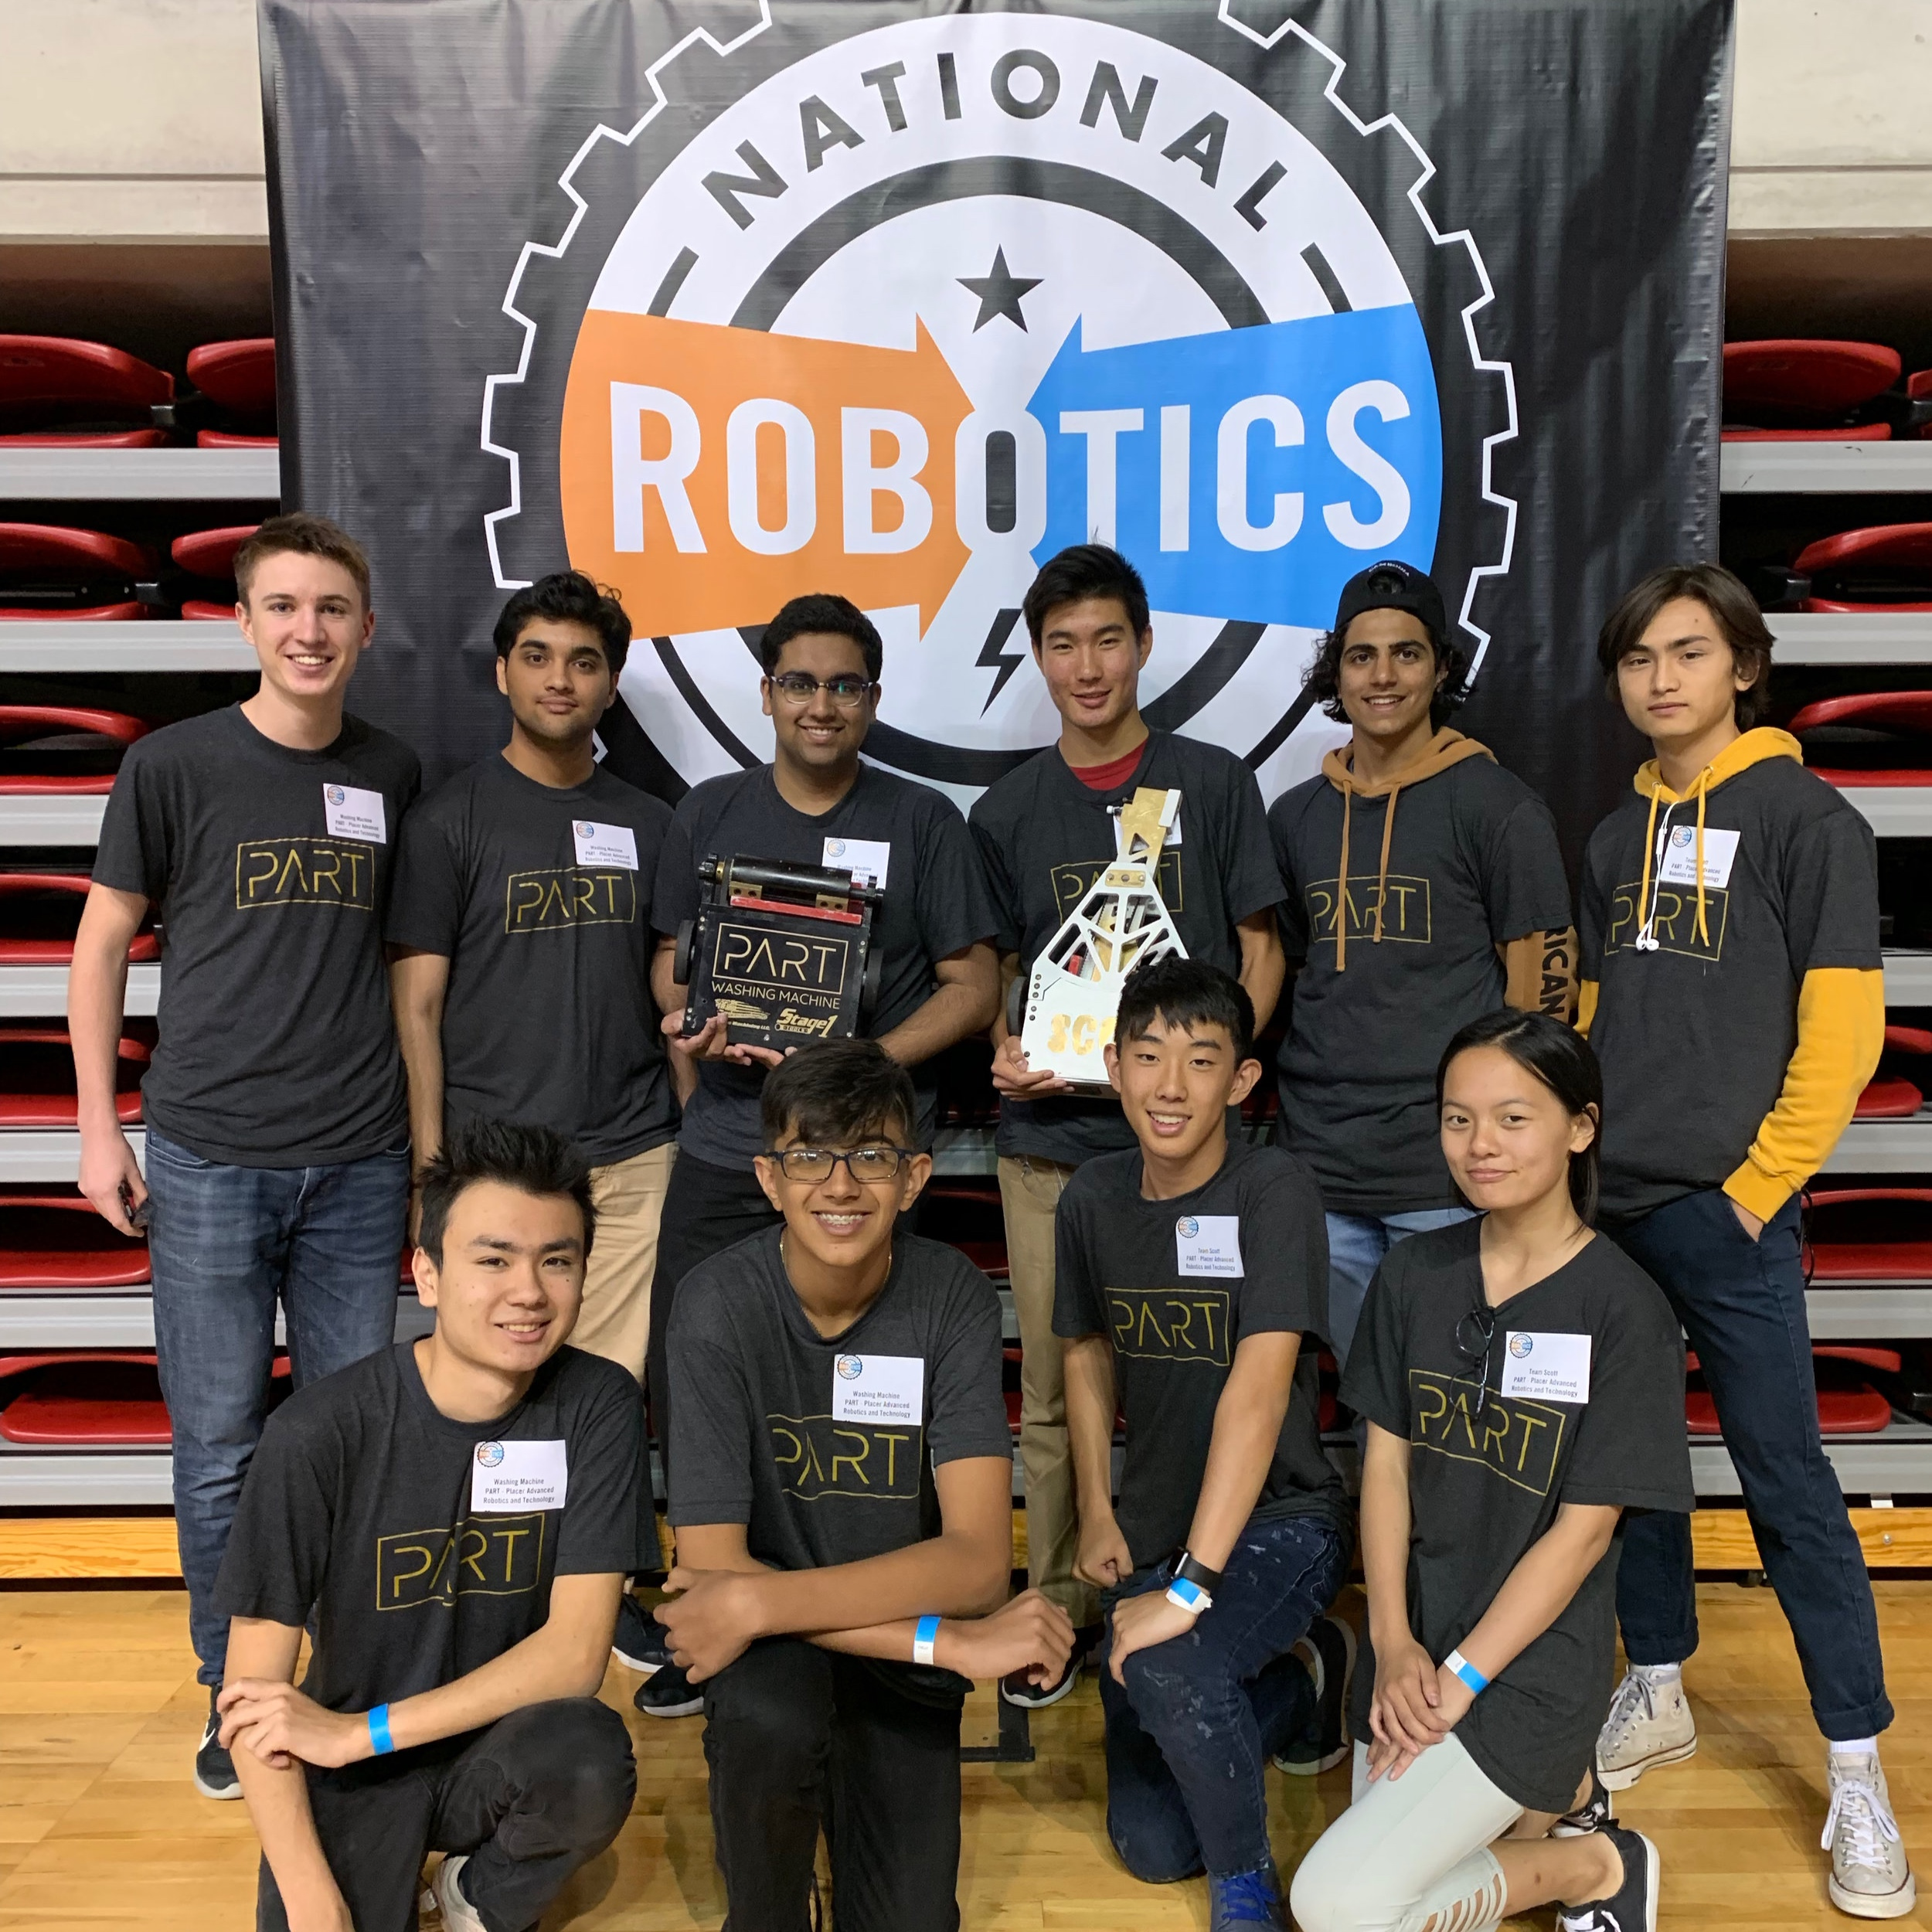 Washing Machine and Scott team members with their bots at NRL Nationals in California, PA